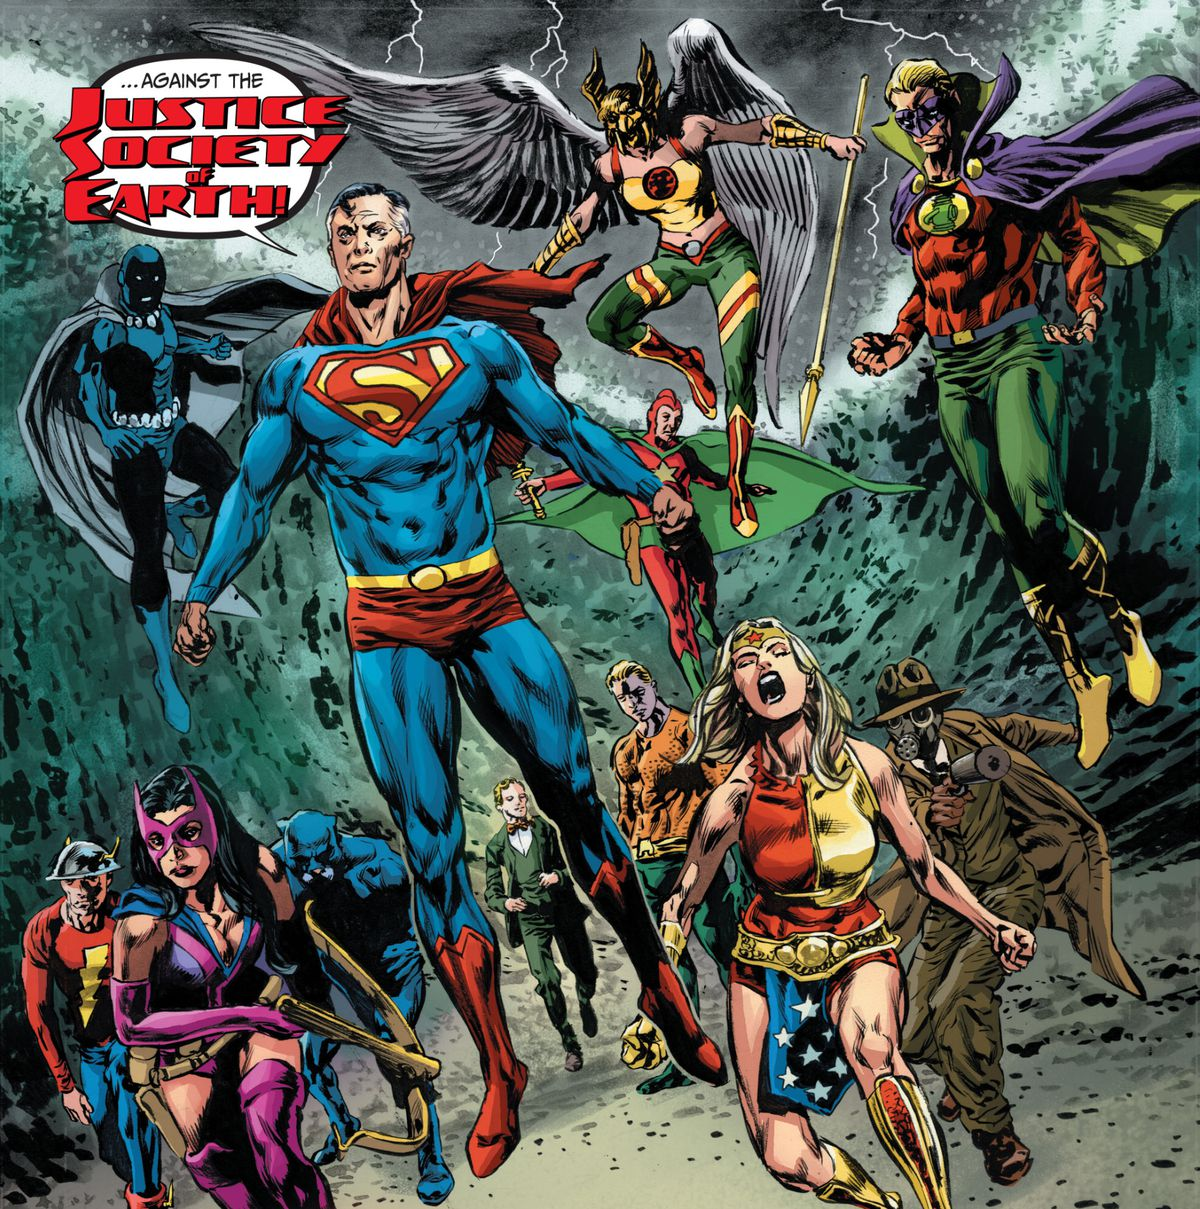 The Justice Society of Earth assembles at the call of Earth 2 Superman in Tales from the Dark Multiverse: Crisis on Infinite Earths, DC Comics (2020).